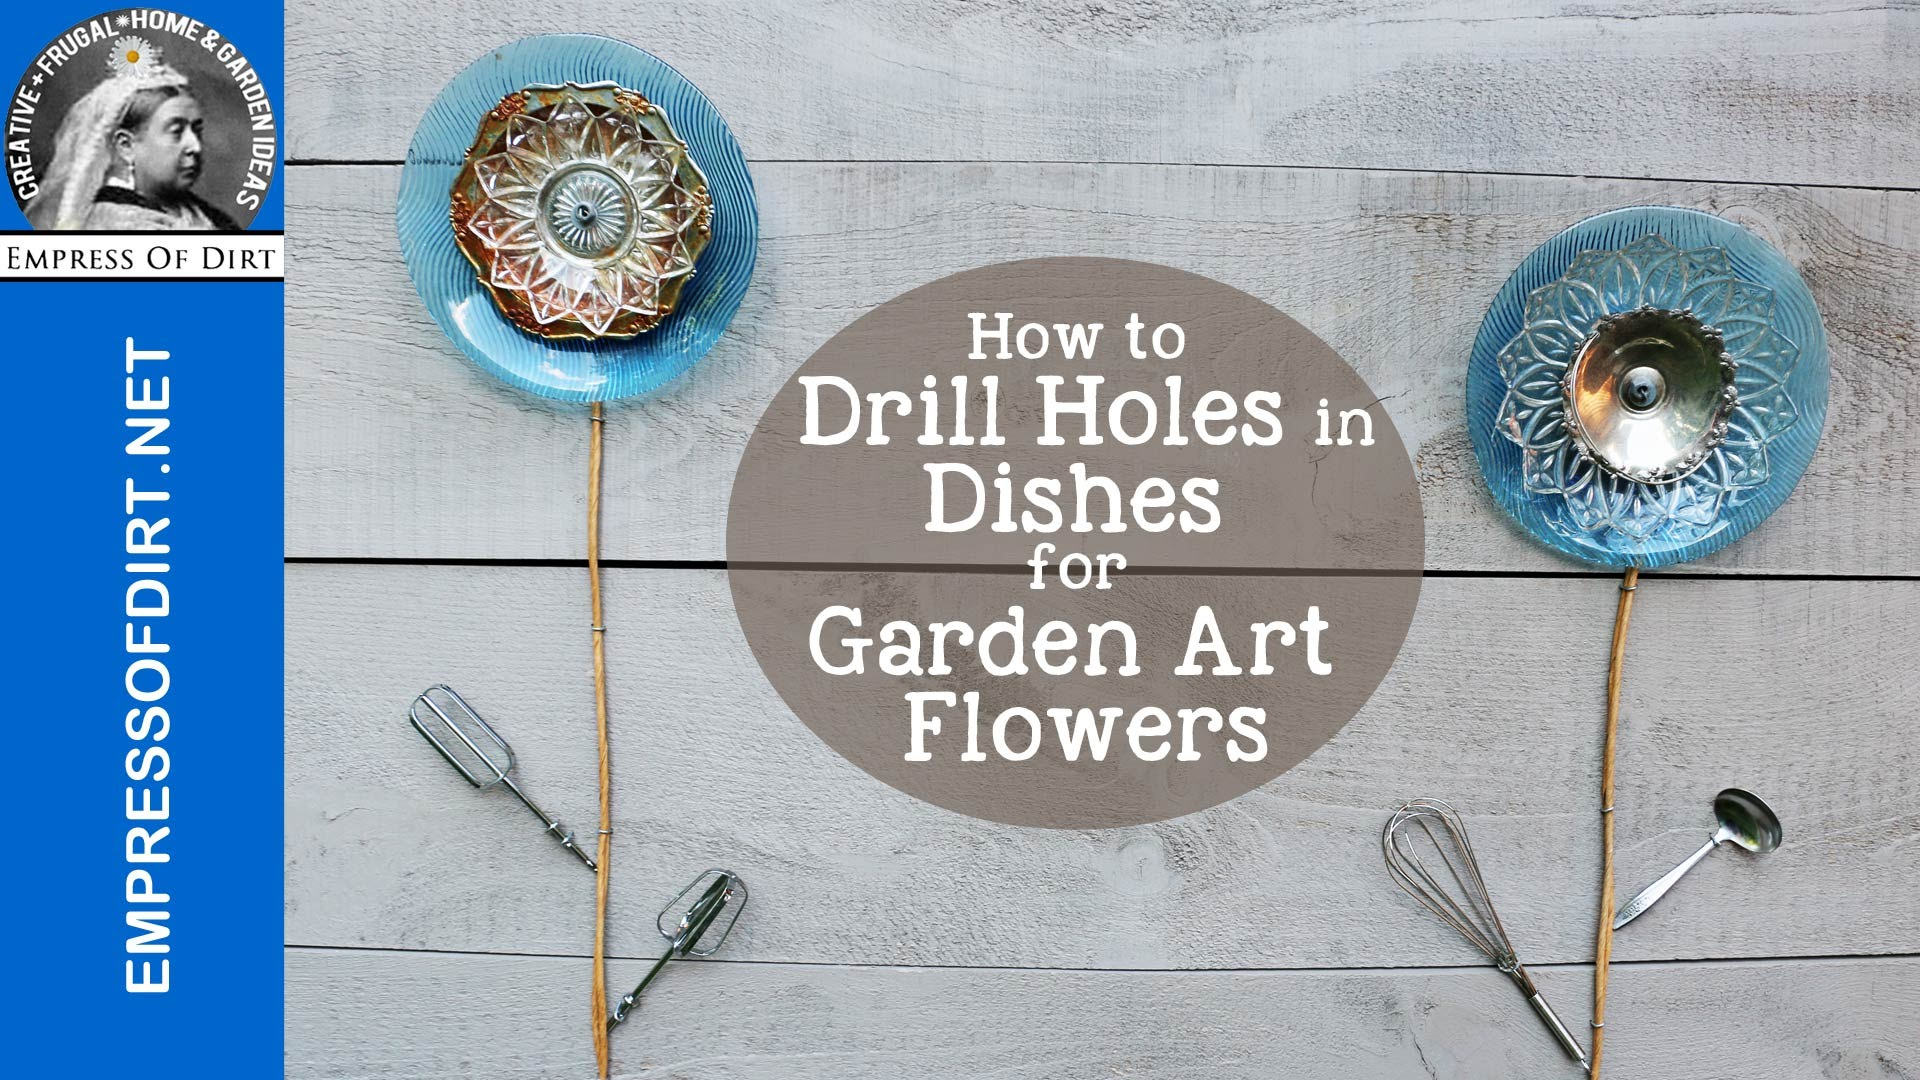 She Shows Us How To Make This Fabulous Yard Art Out Of Old Plates